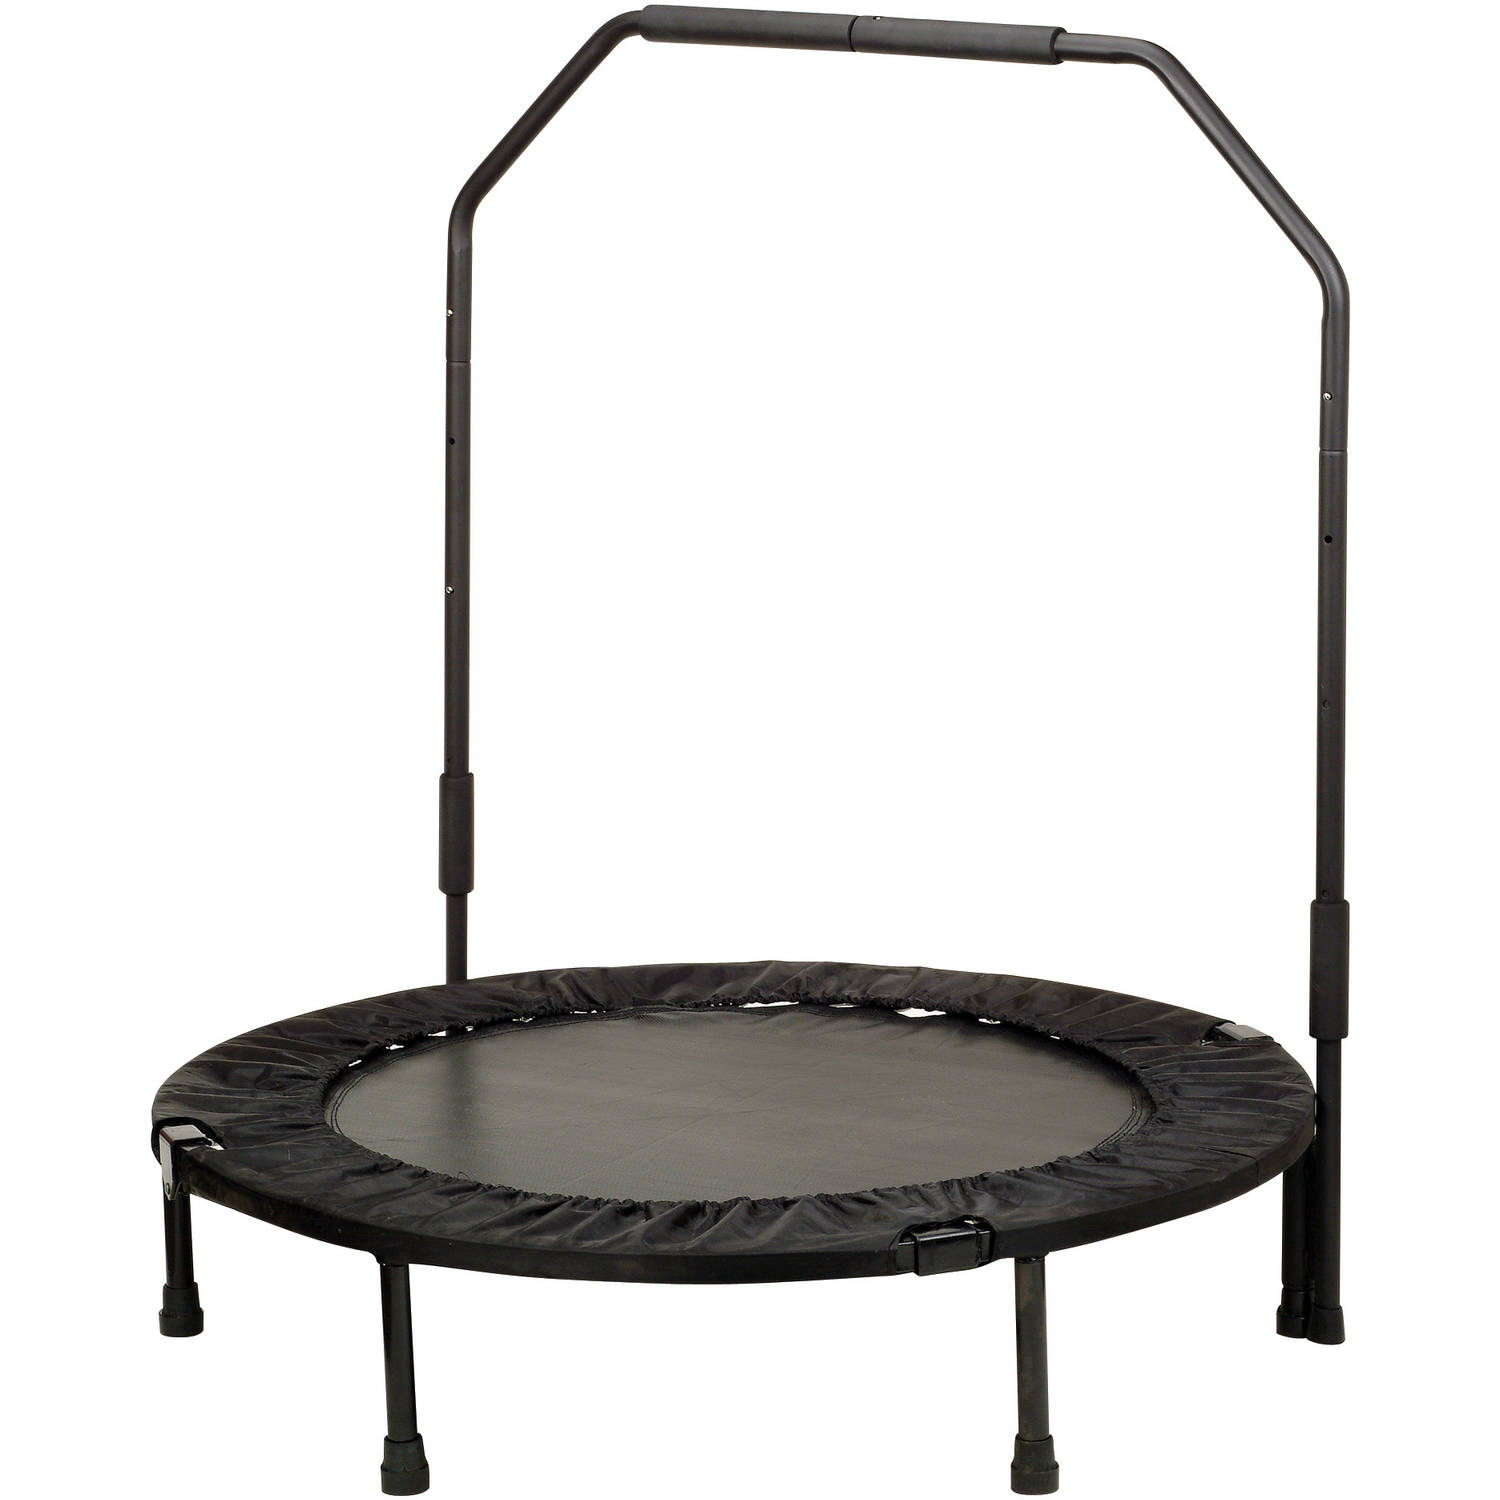 Sunny Health and Fitness 40-Inch Foldable Trampoline Rebounder, with Handlebar, Black